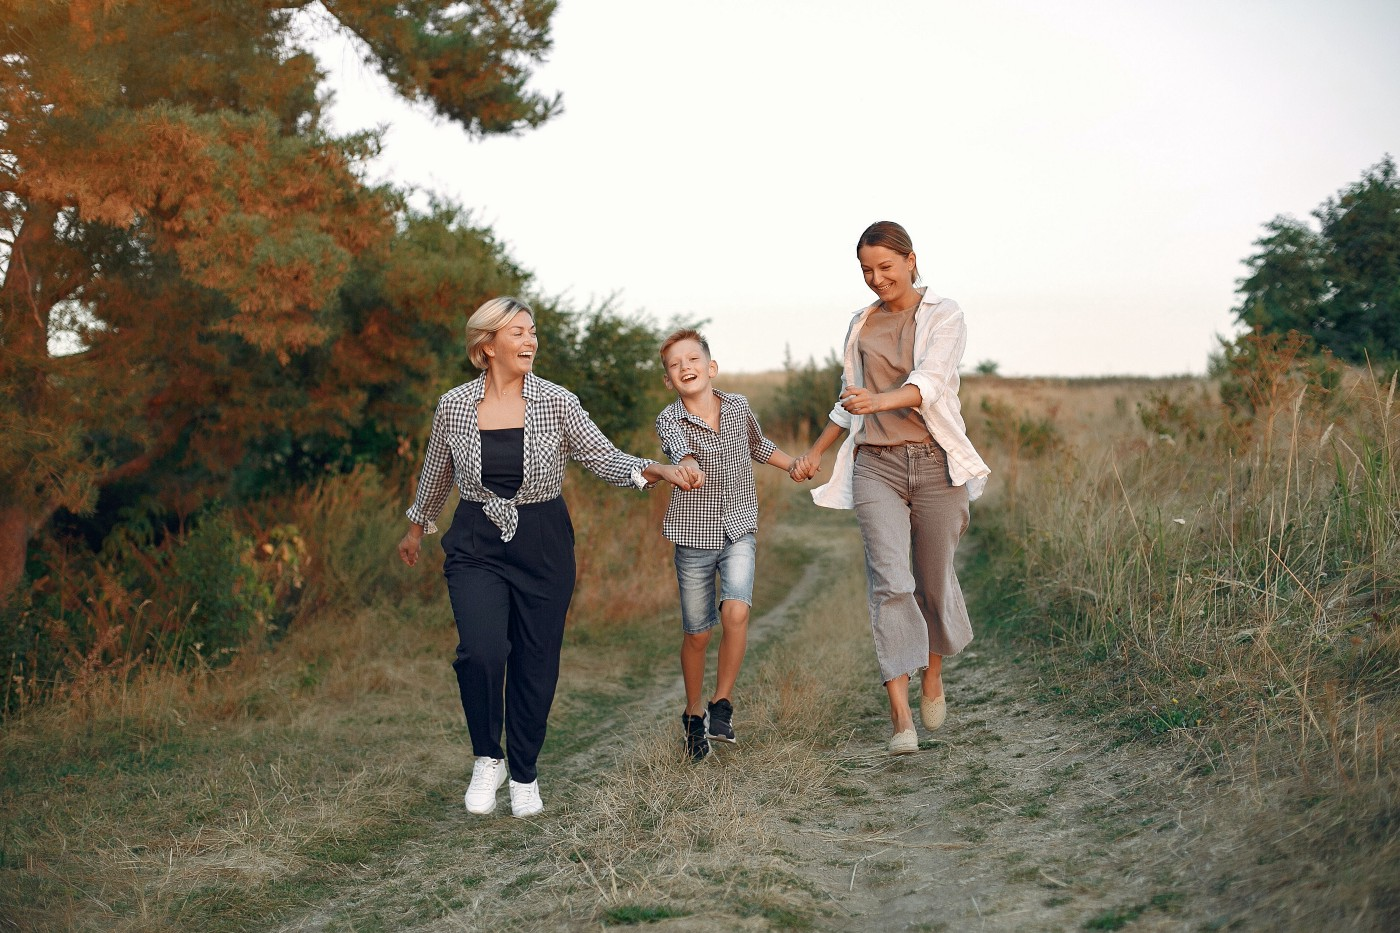 an-older-woman-with-a-younger-woman-and-a-child-running-down-a-path